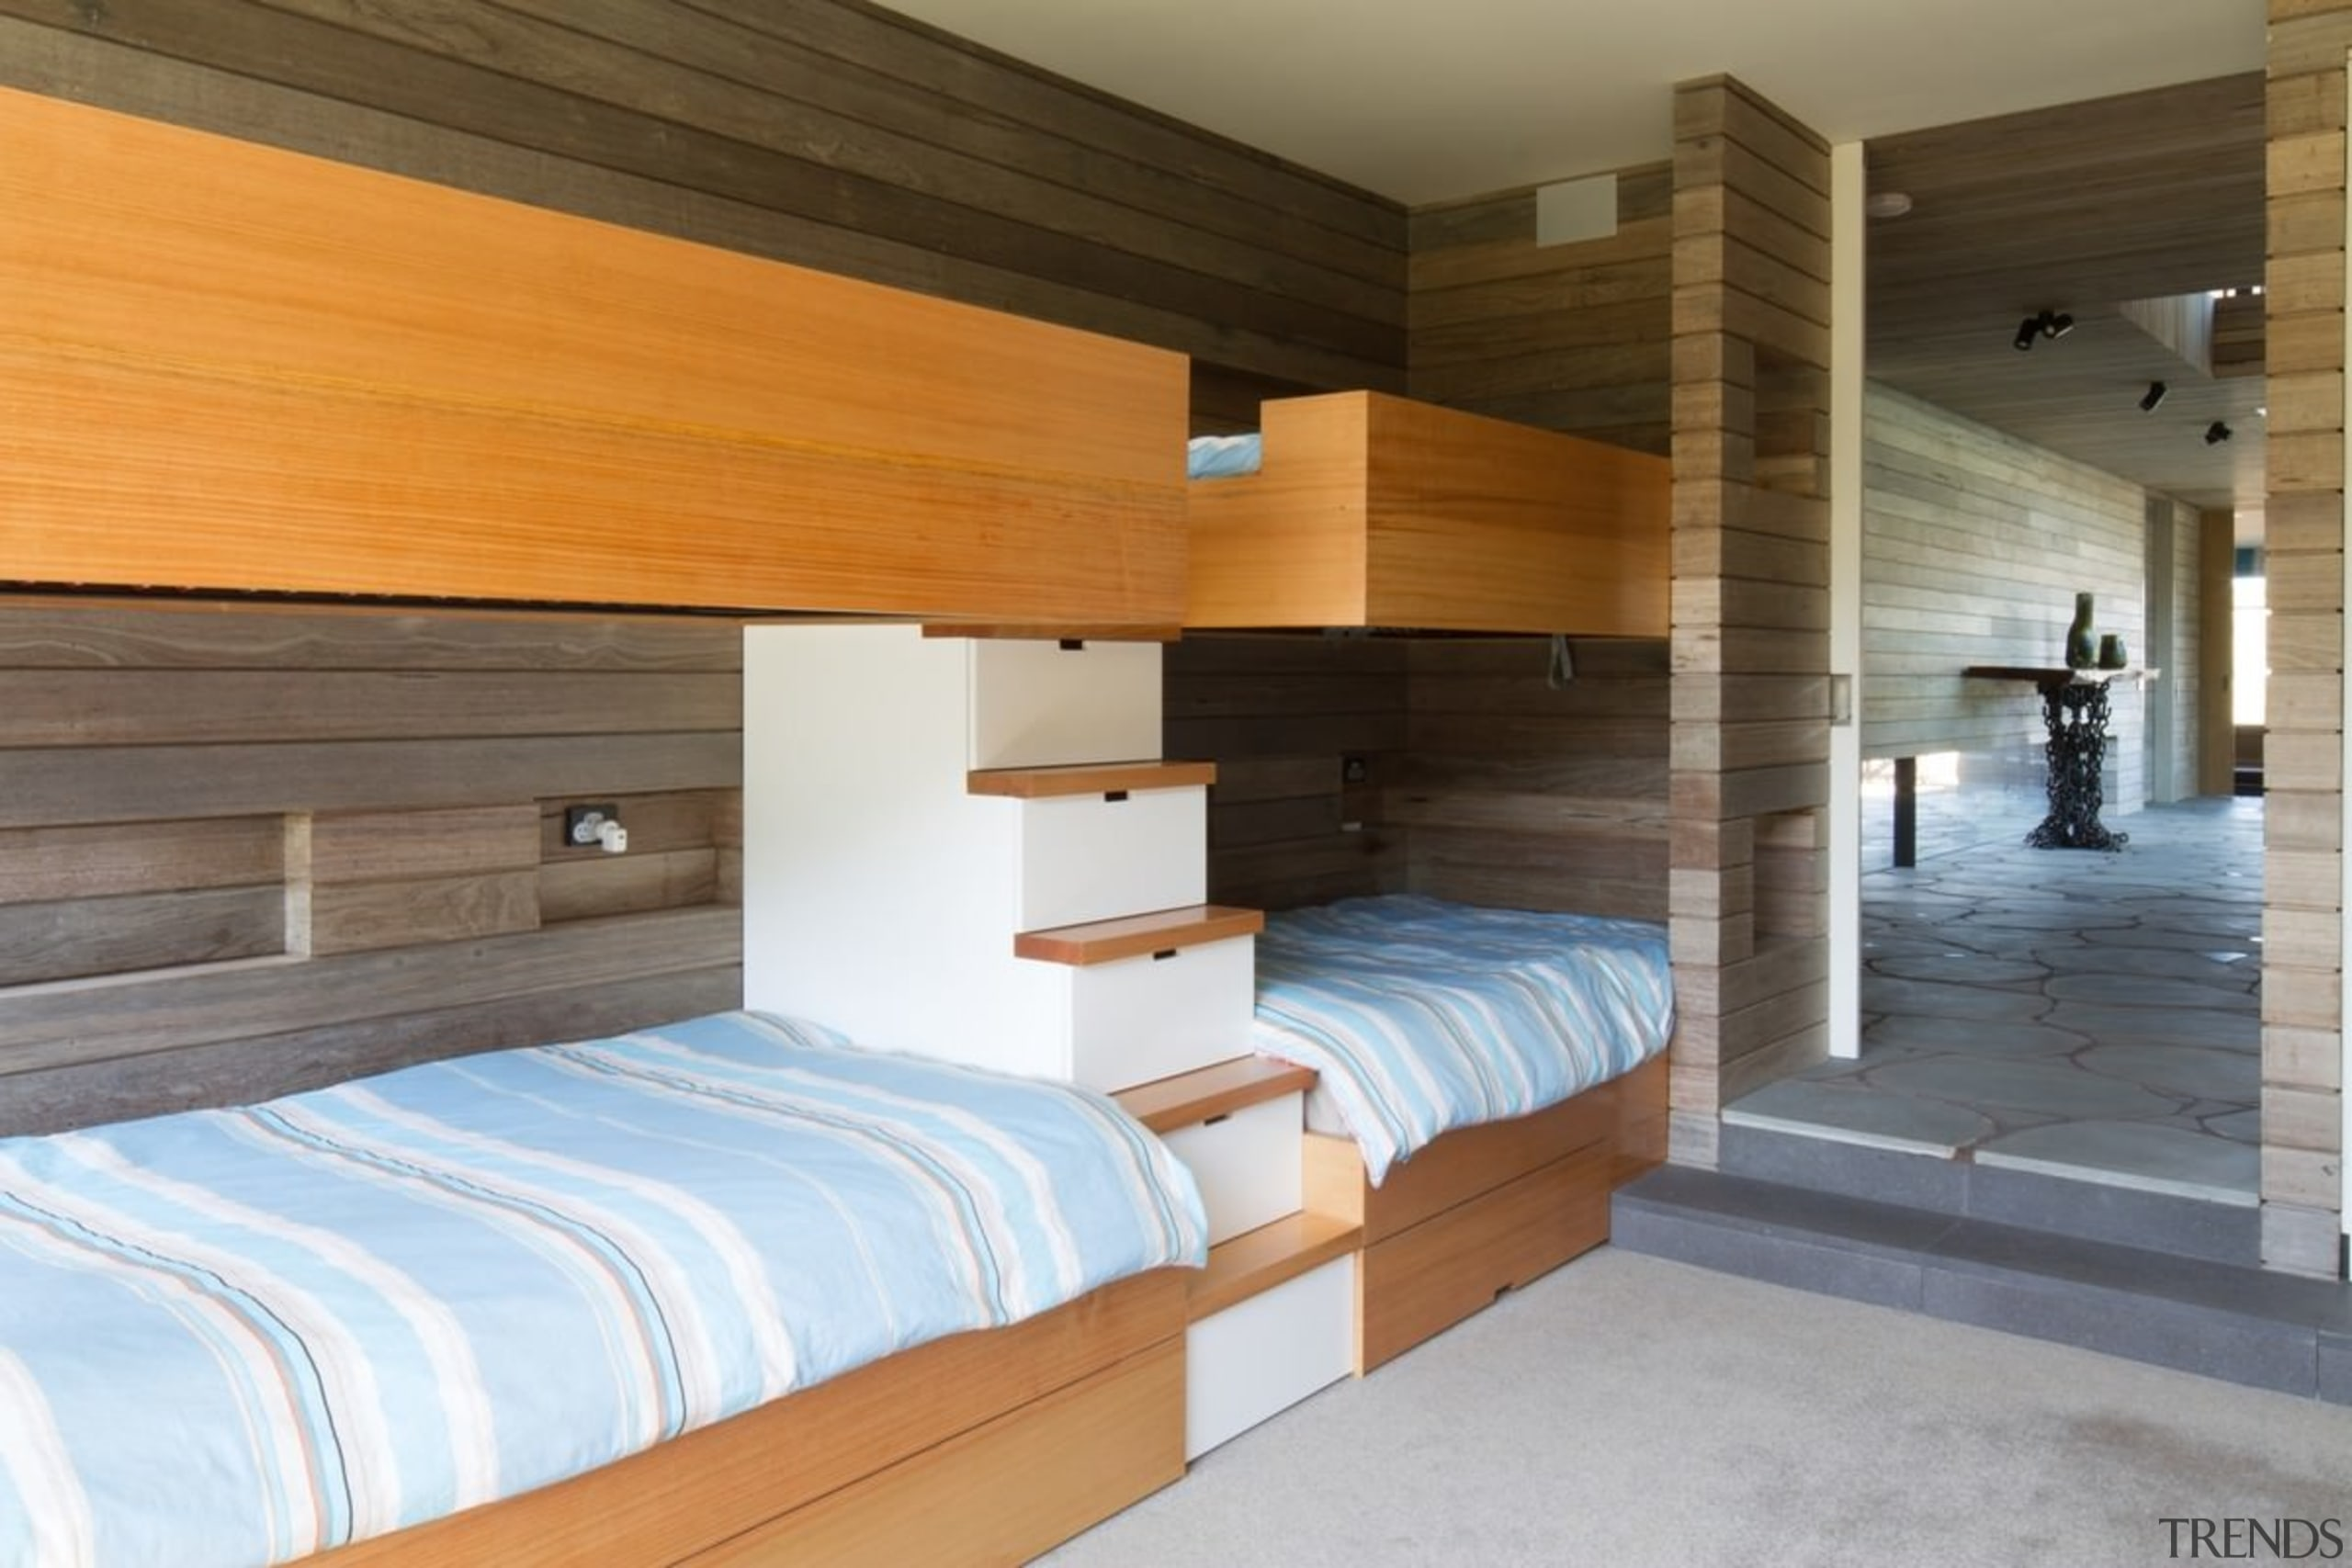 A beach house staple, this room features a architecture, bed frame, floor, house, interior design, property, real estate, room, suite, wood, brown